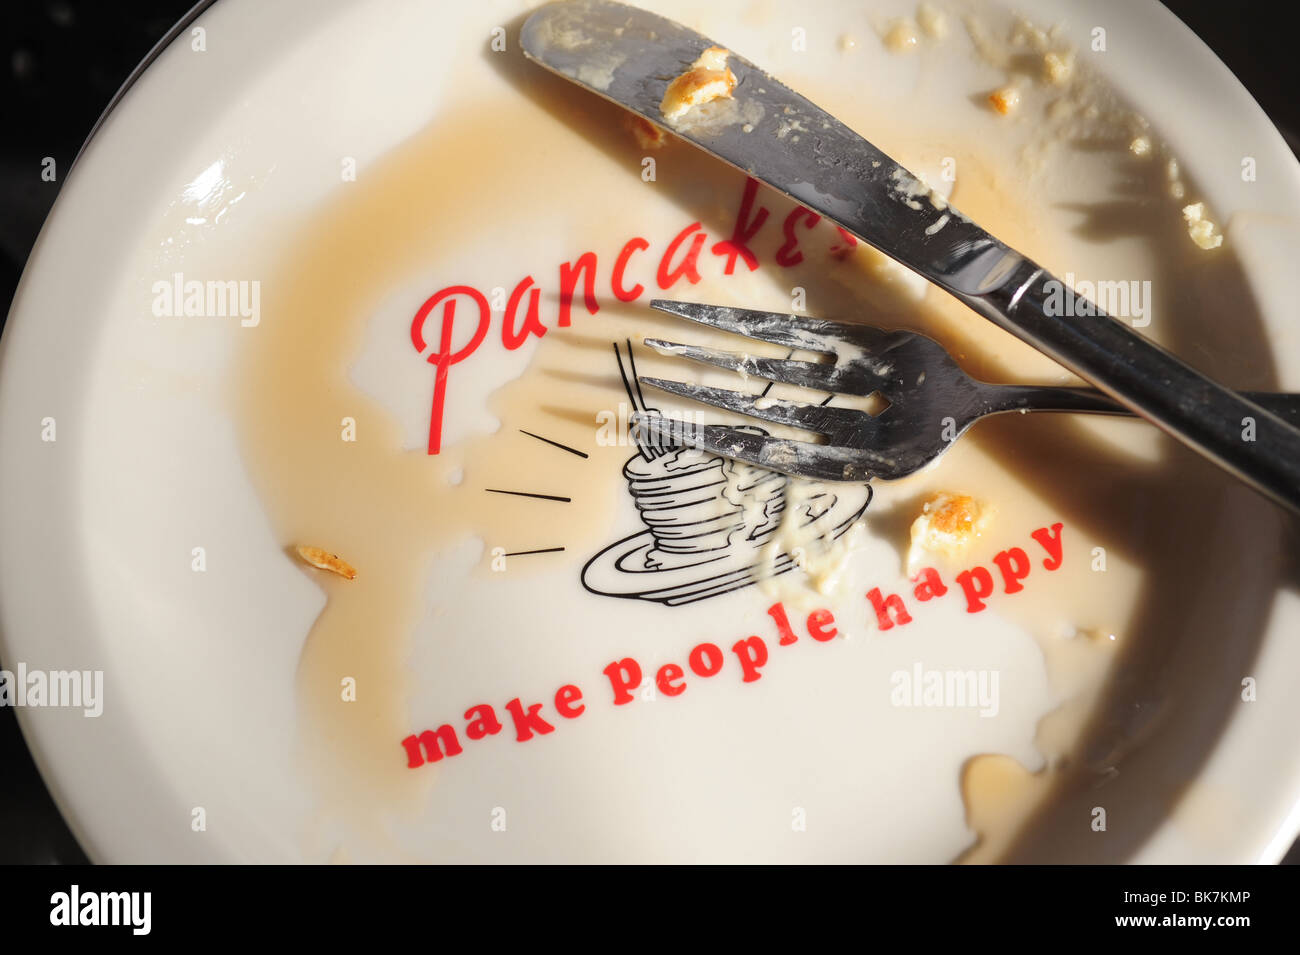 empty-plate-for-pancakes-knife-and-fork-syrup-pancakes-make-people-BK7KMP.jpg